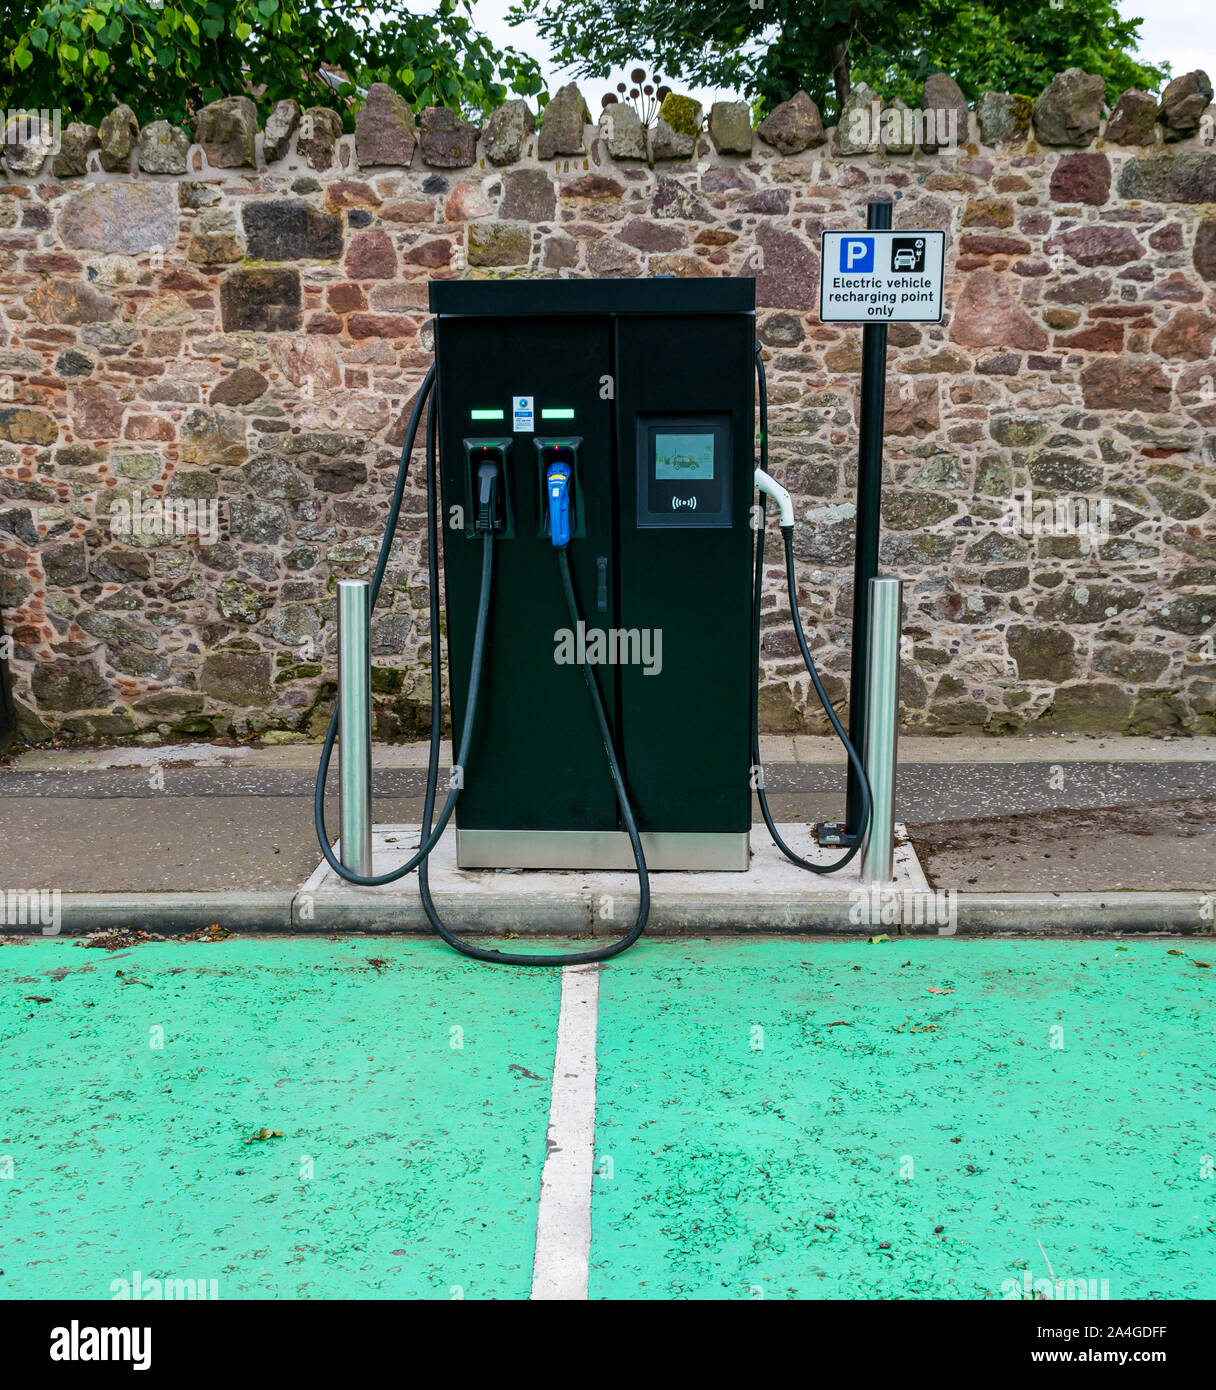 electric-vehicle-car-recharging-point-ea